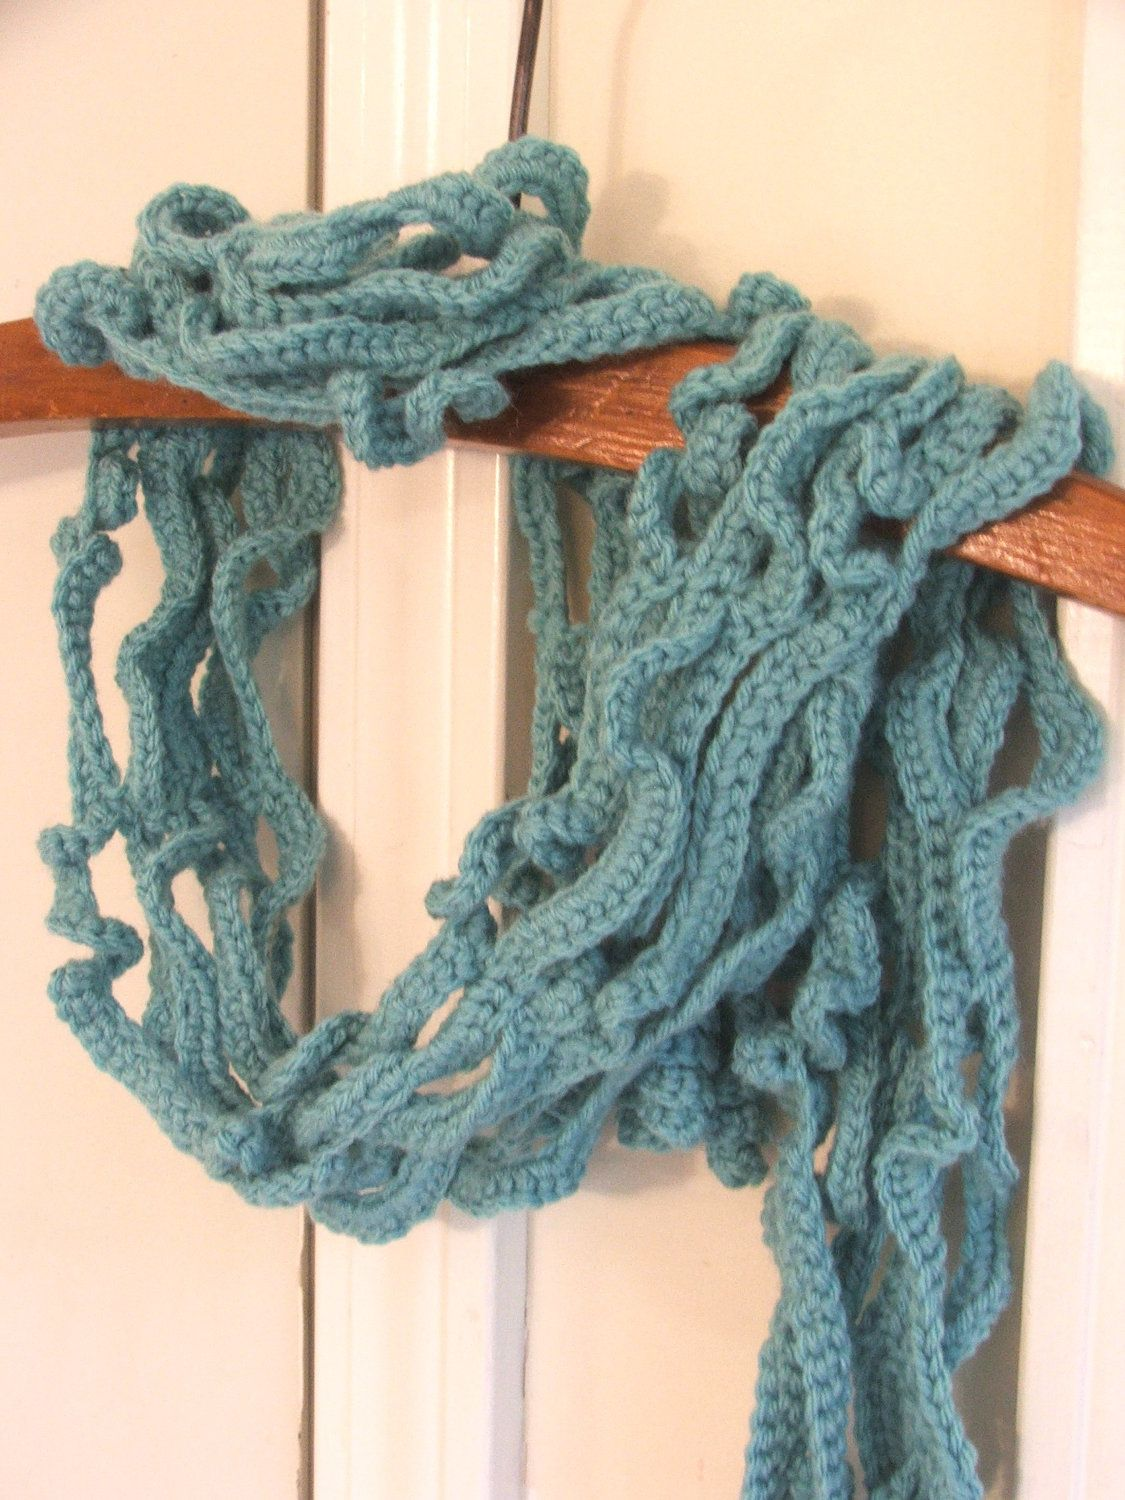 New Crochet Scarf Pattern Instant Download Of Curly Vines Crochet